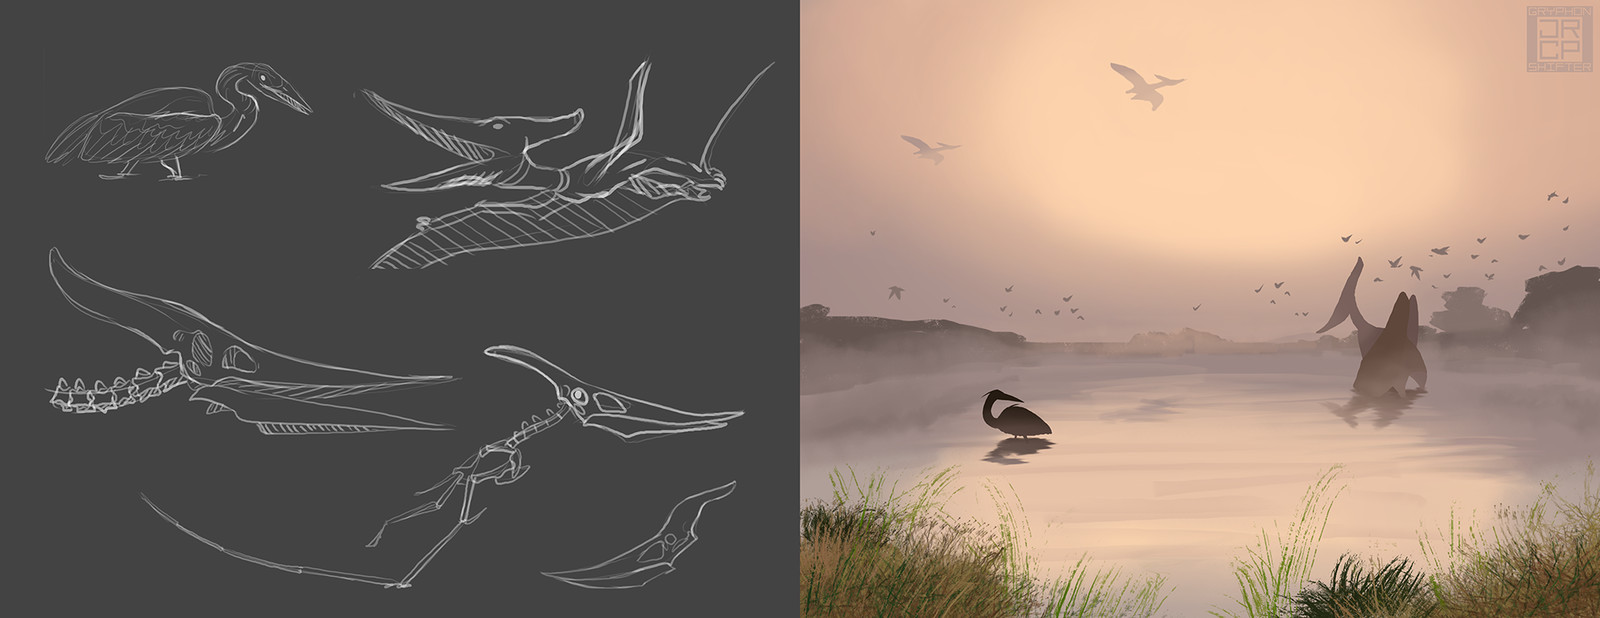 12: Pteranodon imagined in a modern-day setting.